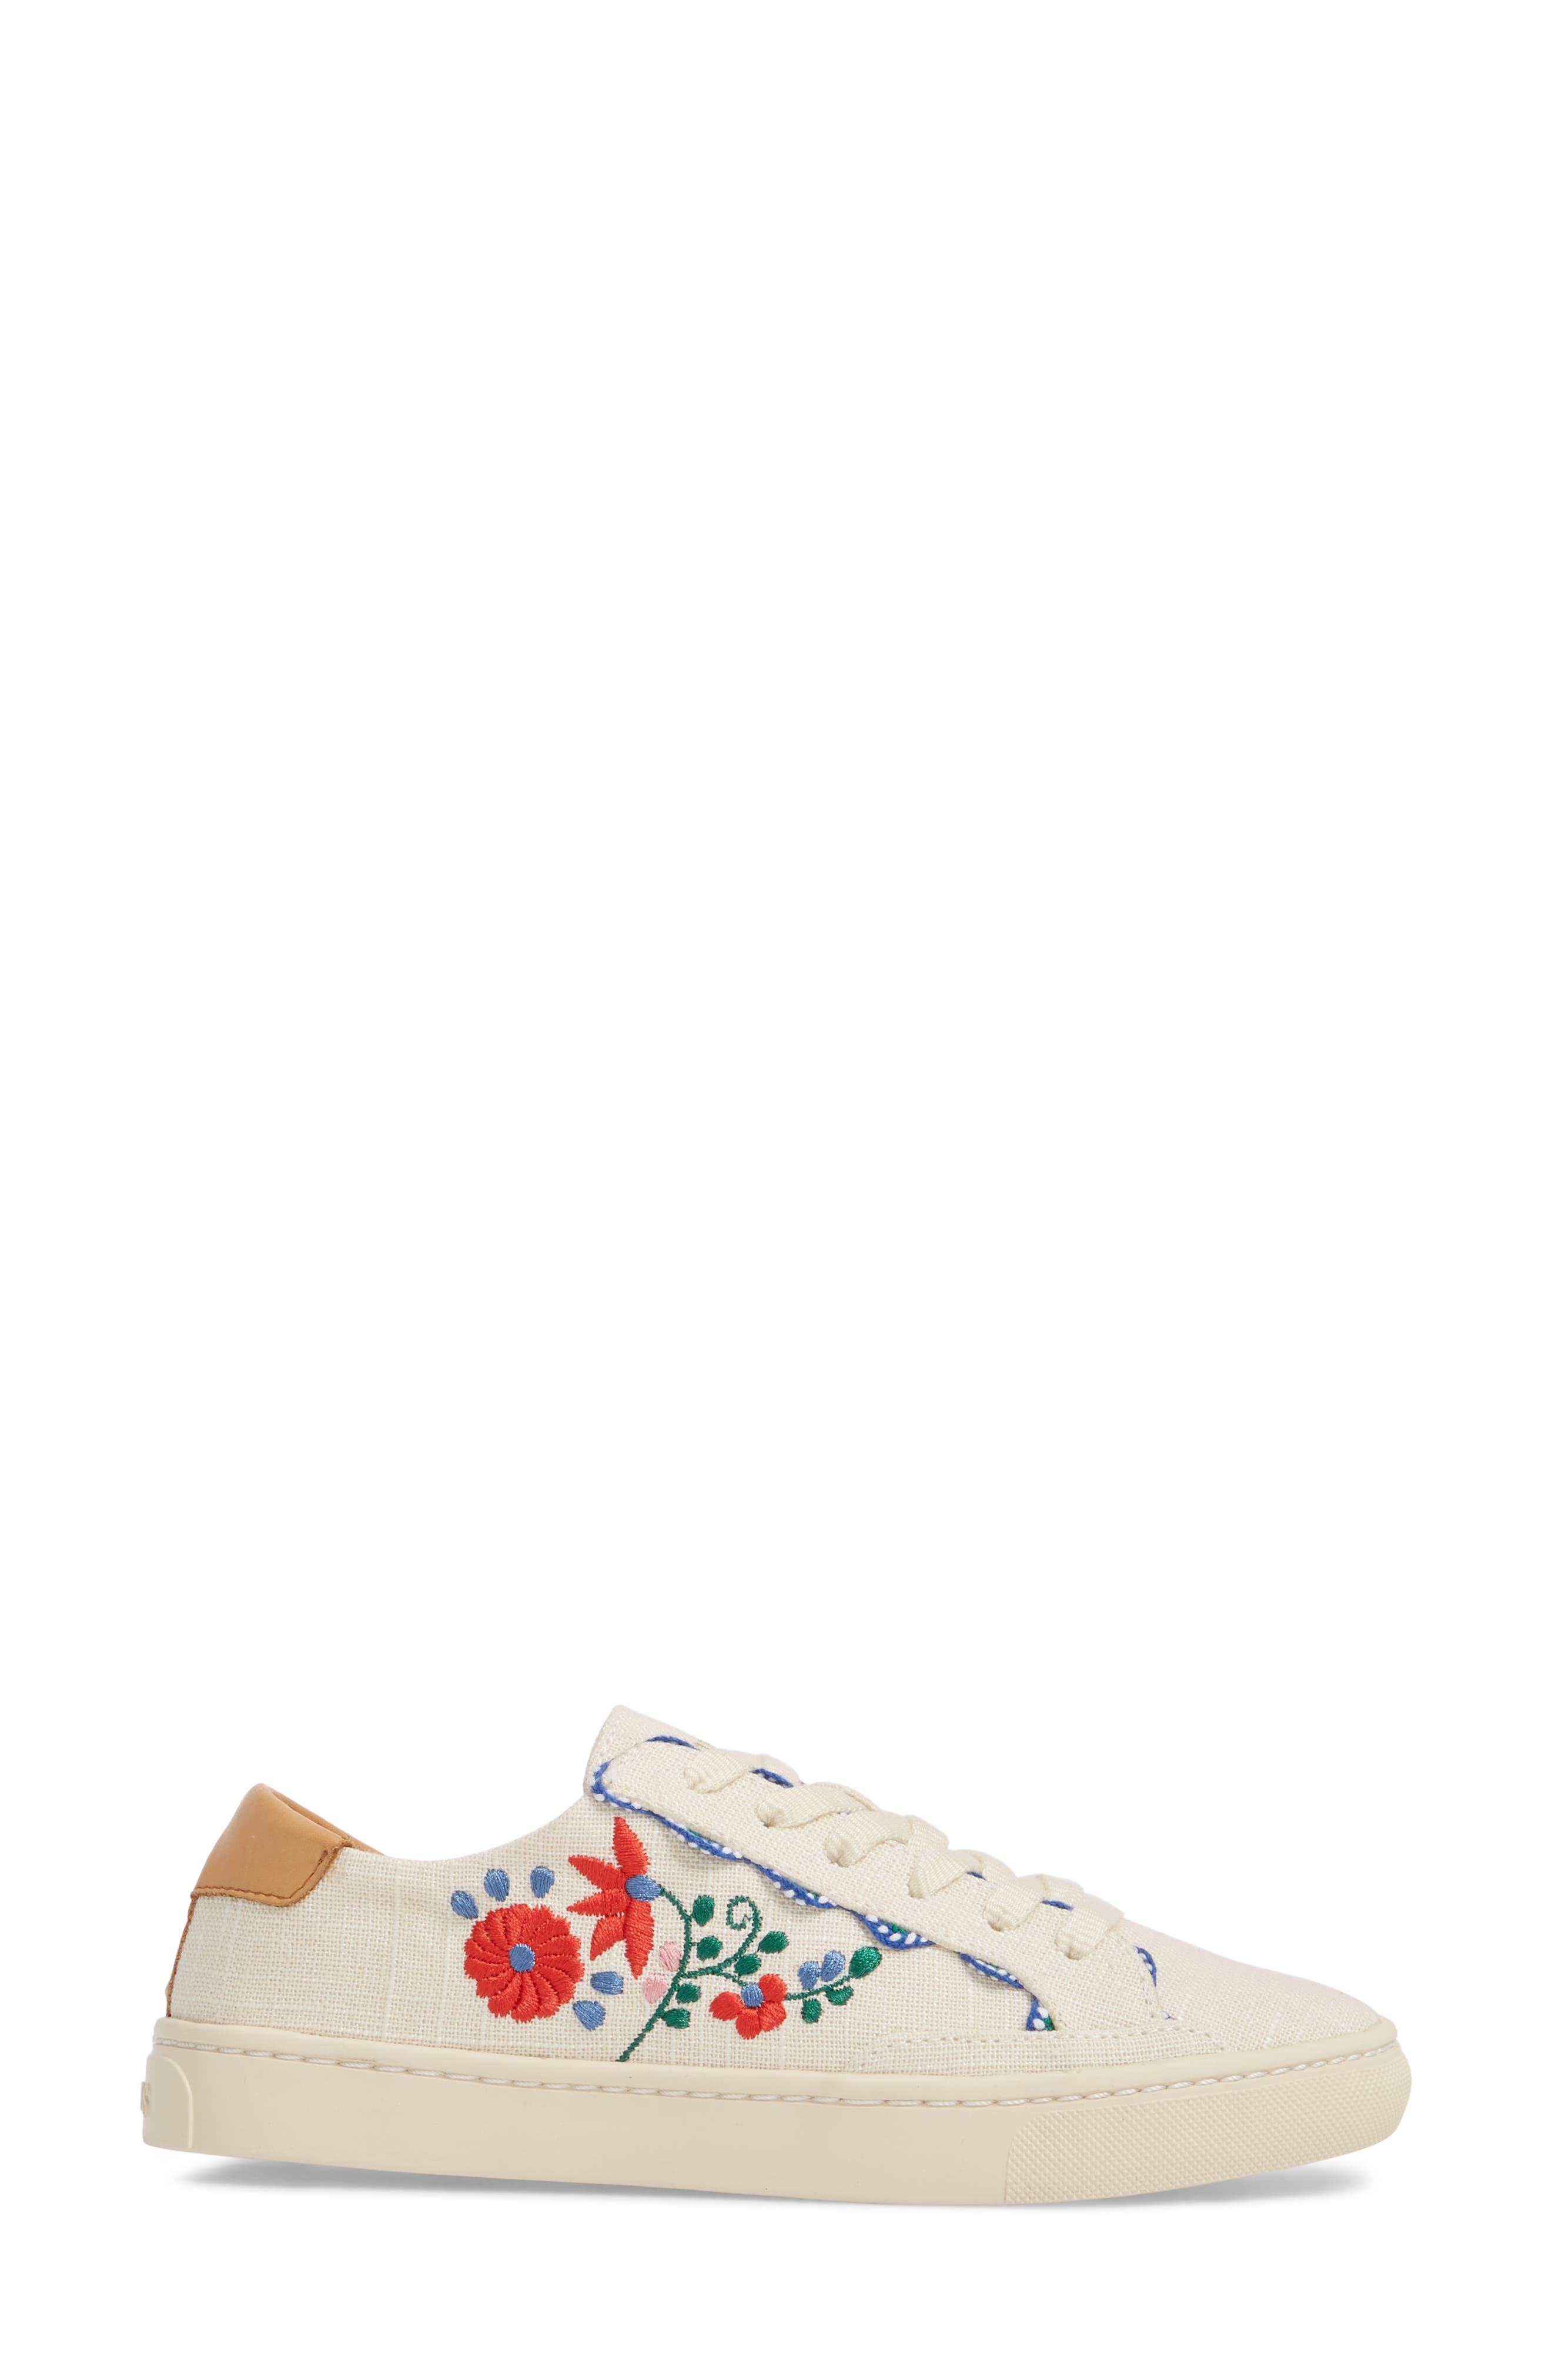 Ibiza Embroidered Sneaker,                             Alternate thumbnail 3, color,                             680